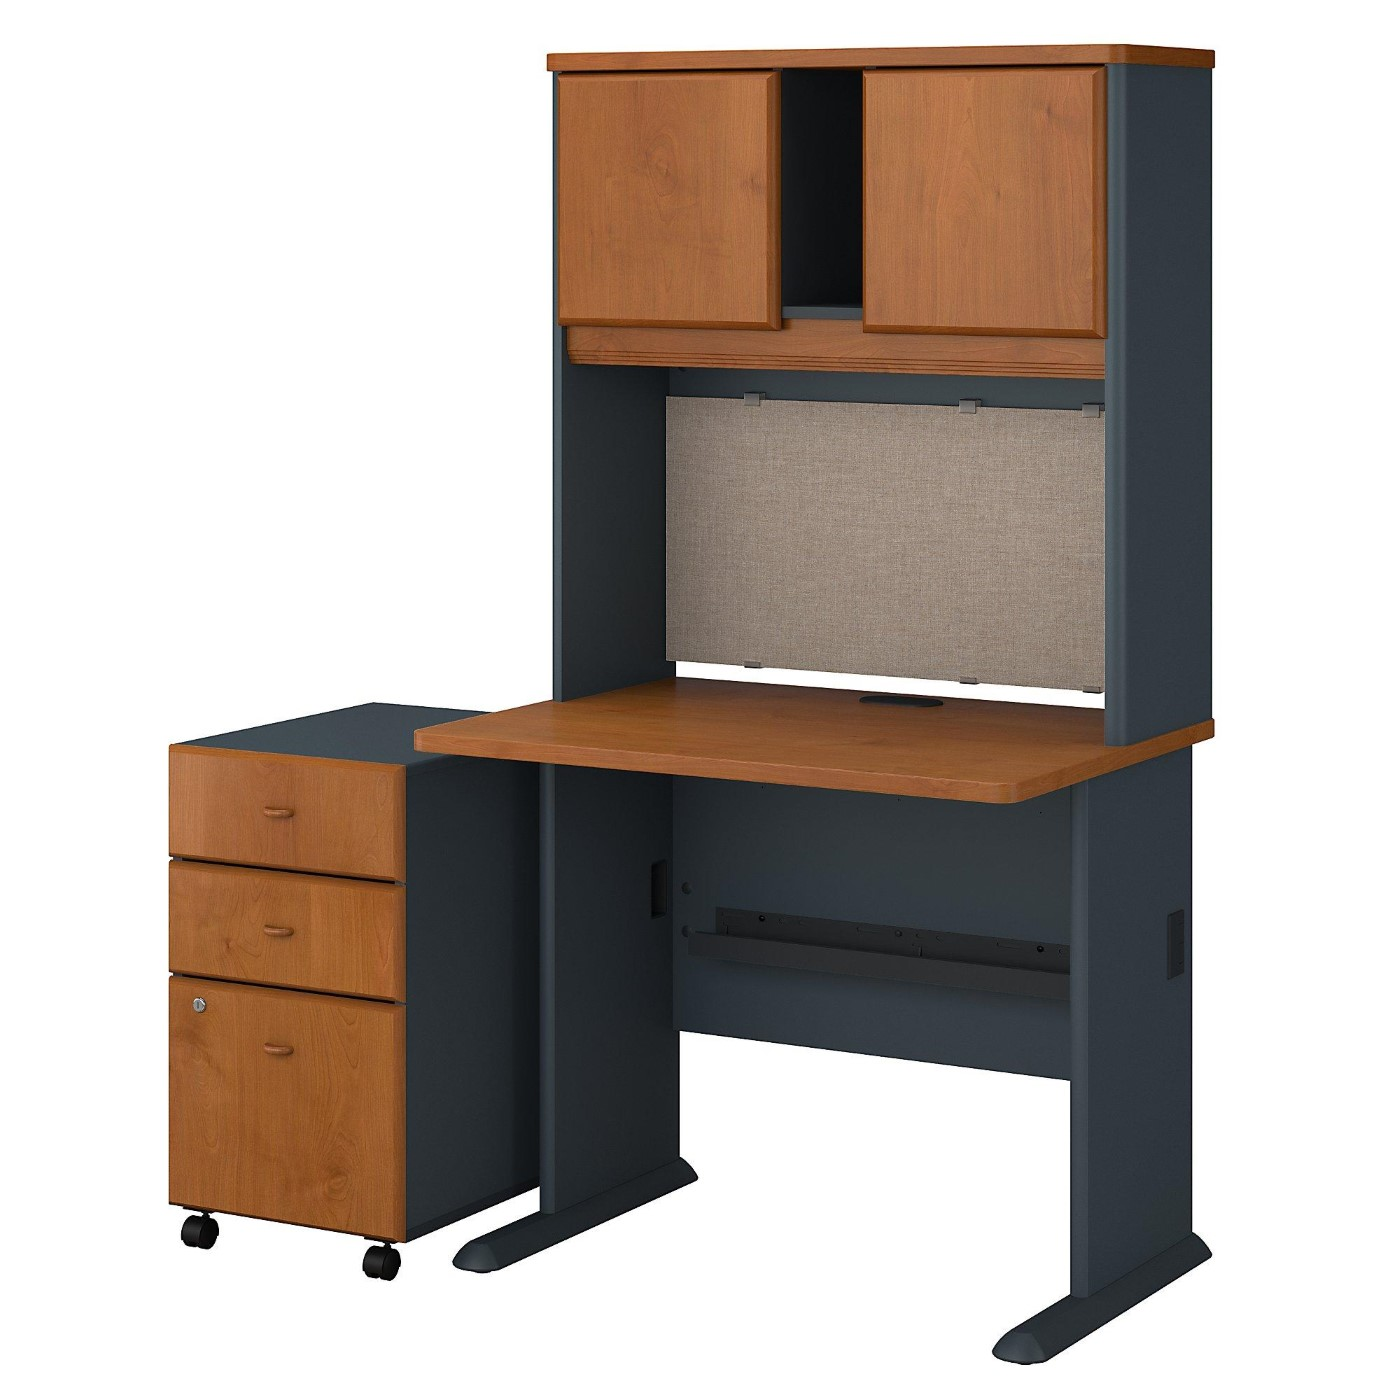 BUSH BUSINESS FURNITURE SERIES A 36W DESK WITH HUTCH AND MOBILE FILE CABINET. FREE SHIPPING.  SALE DEDUCT 10% MORE ENTER '10percent' IN COUPON CODE BOX WHILE CHECKING OUT.